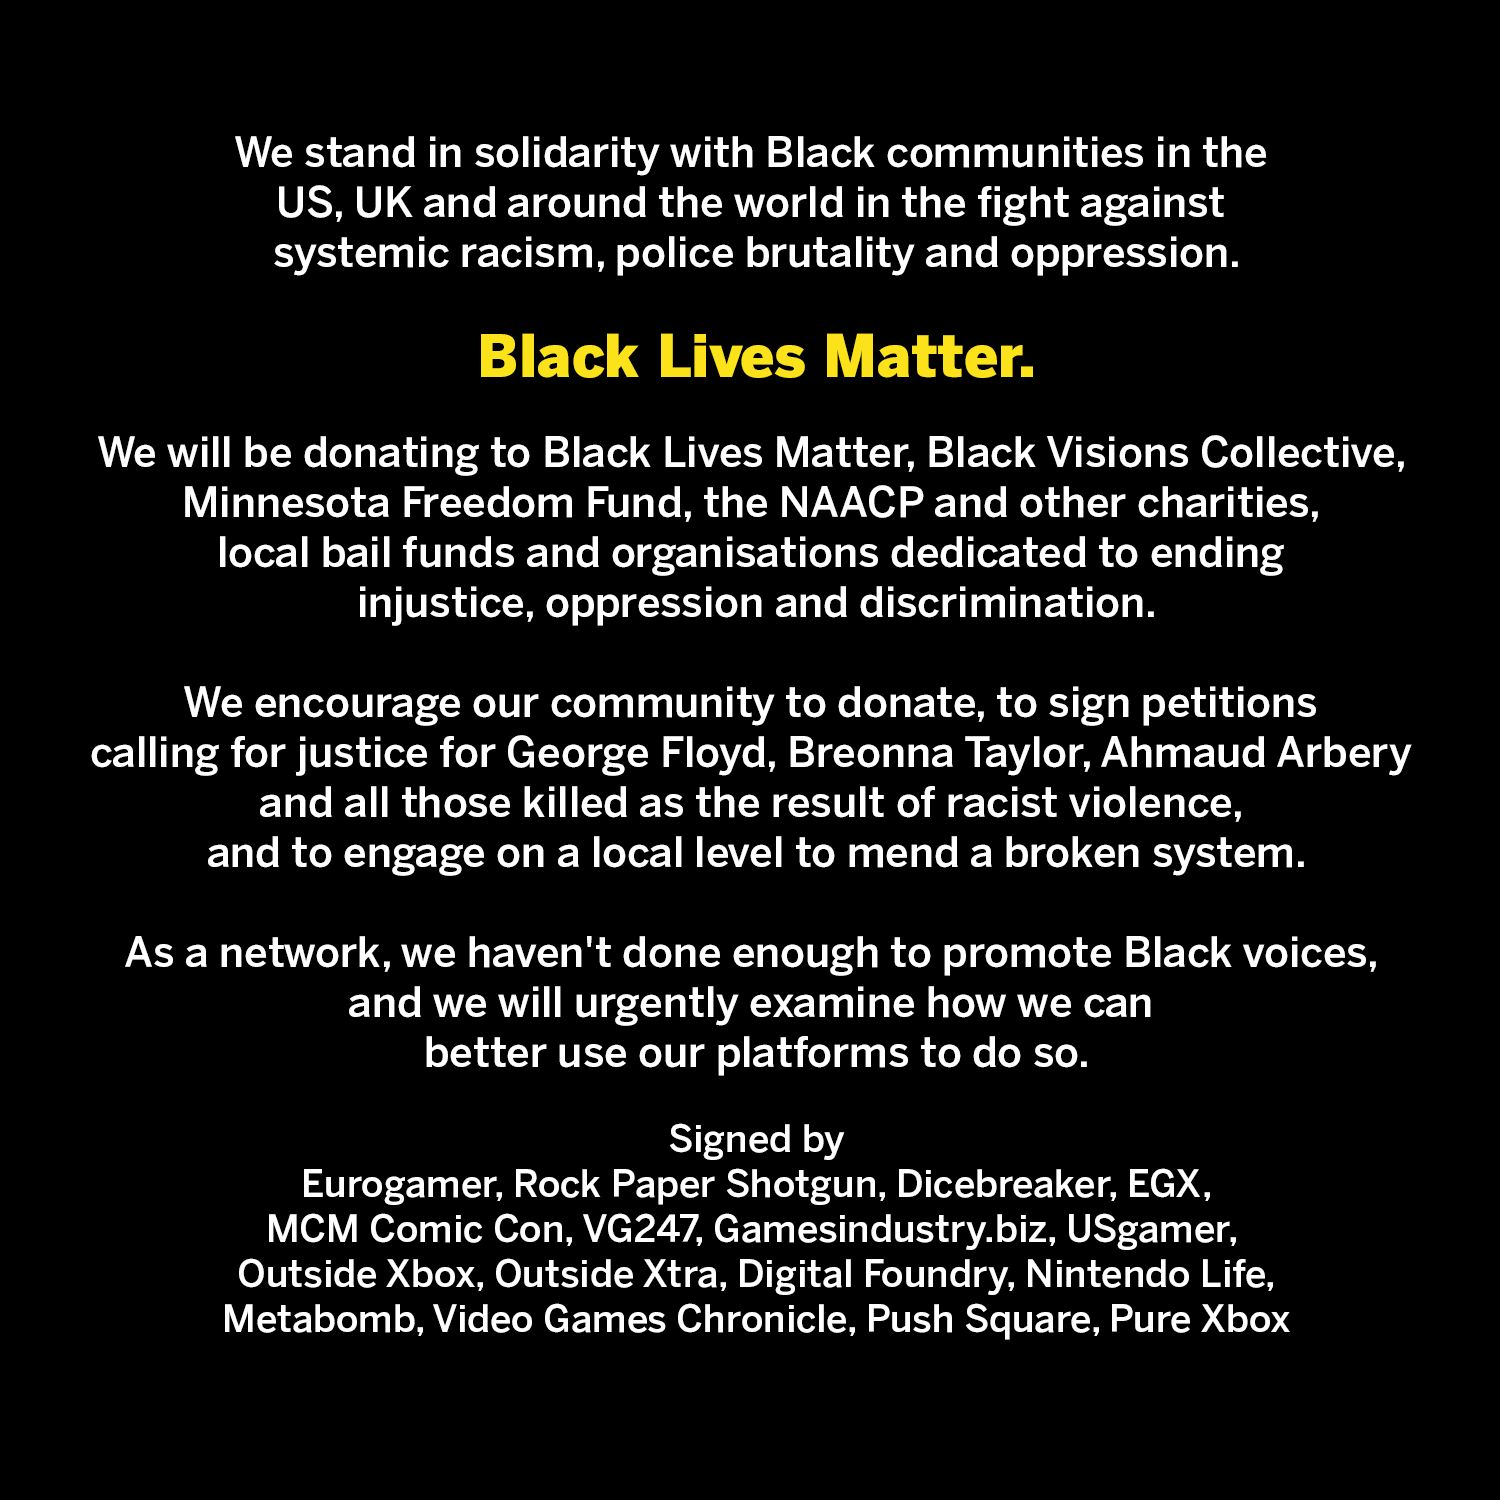 We stand in solidarity with Black communities in the US, UK and around the world in the fight against systemic racism, police brutality and oppression.  Black Lives Matter.  We will be donating to Black Lives Matter, Black Visions Collective, Minnesota Freedom Fund, the NAACP and other charities, local bail funds and organisations dedicated to ending injustice, oppression and discrimination. We encourage our community to donate, to sign petitions calling for justice for George Floyd, Breonna Taylor, Ahmaud Arbery and all those killed as the result of racist violence, and to engage on a local level to mend a broken system.  As a network, we haven't done enough to promote Black voices, and we will urgently examine how we can better use our platforms to do so.  Signed by Eurogamer, USGamer, Dicebreaker, Rock Paper Shotgun, Outside Xbox, Outside Xtra, Cosplay Central, Metabomb, GI.biz, VG247, Digital Foundry, Nintendo Life, Push Square, Pure Xbox, MCM Comic Con.